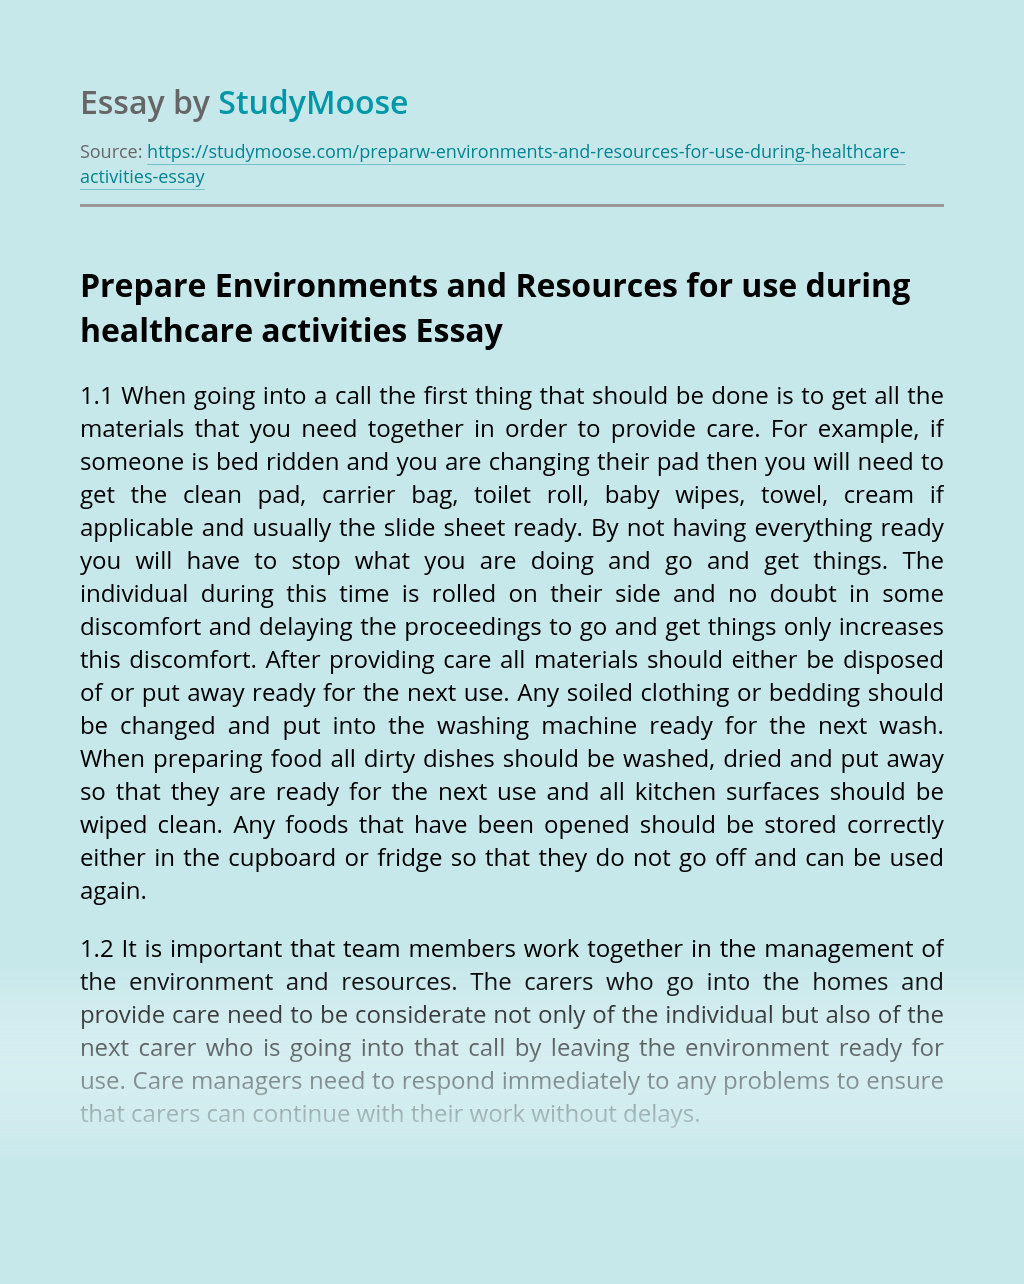 Prepare Environments and Resources for use during healthcare activities